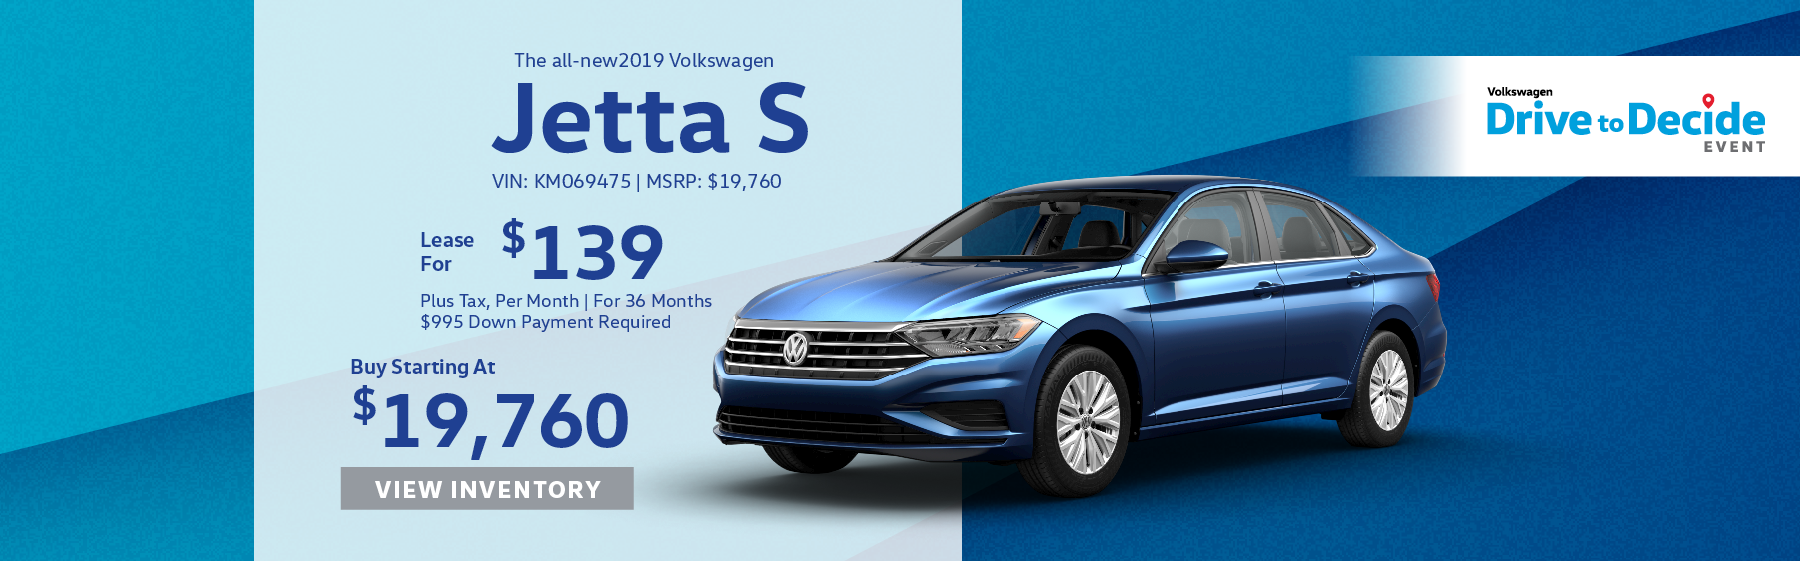 Get the all-new 2019 Volkswagen Jetta S, starting at $19,760, or lease for $139 per month, plus tax for 36 months. Click here to view inventory.